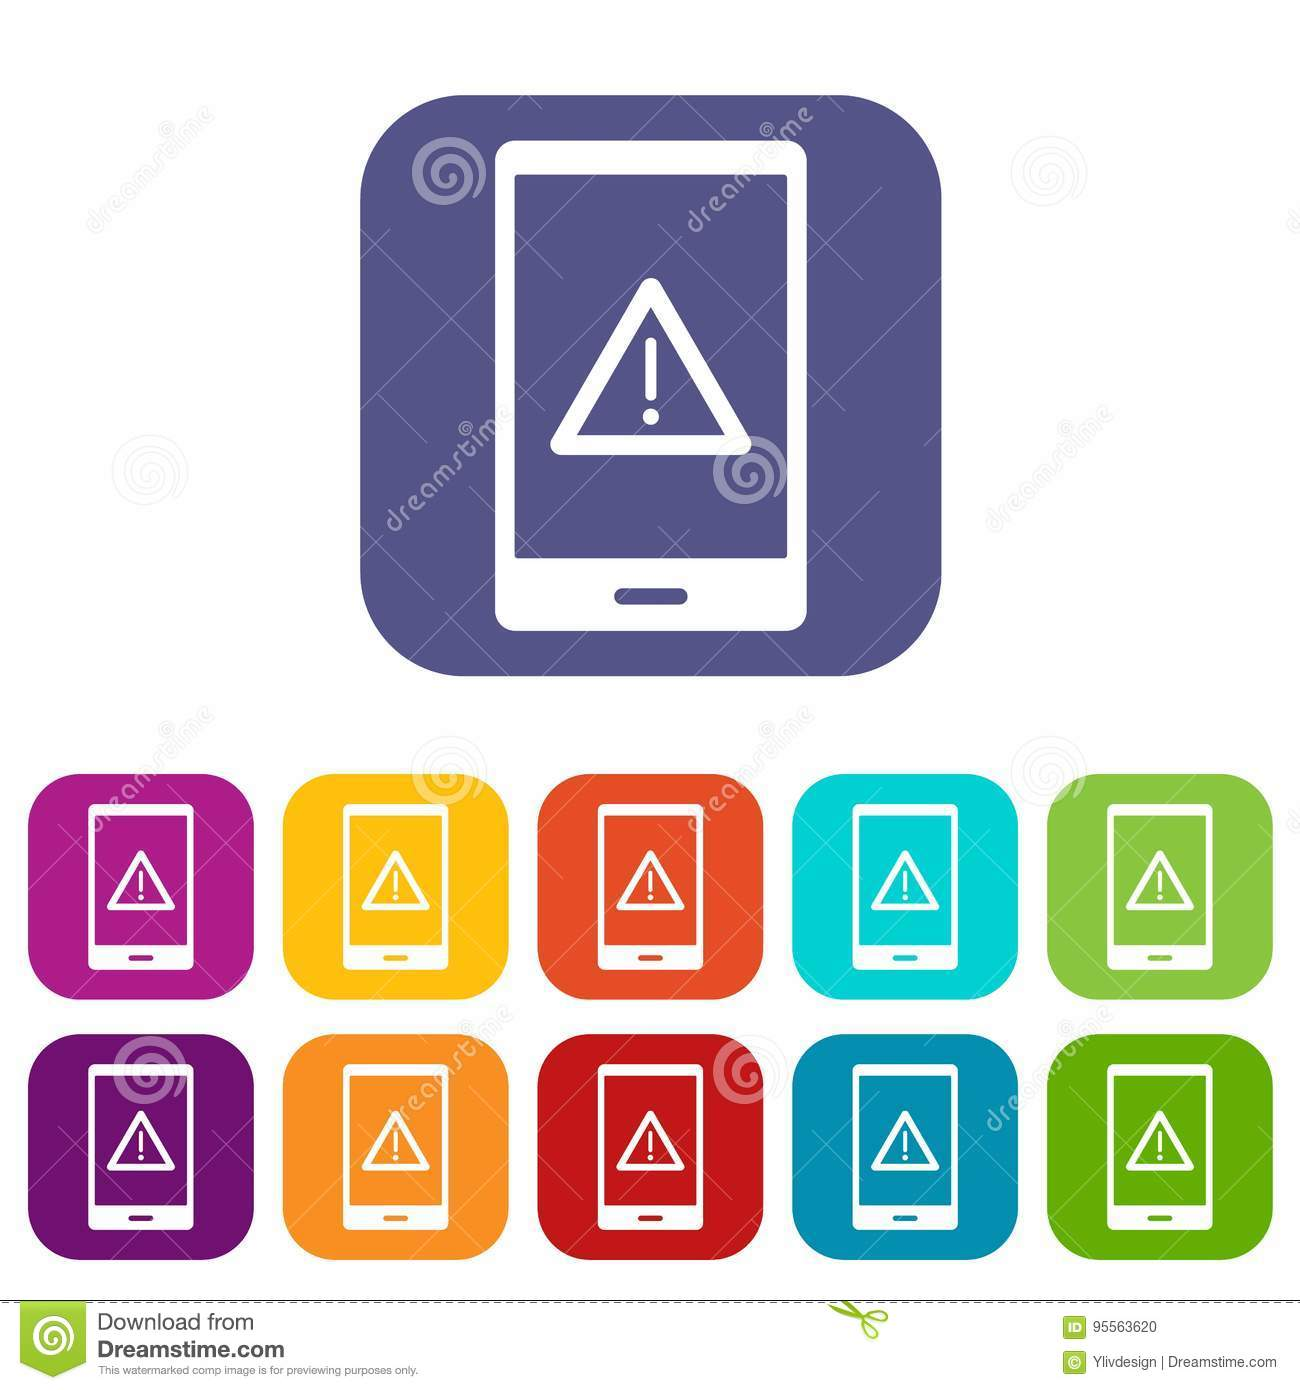 Not Working Phone Icons Set Flat Stock Vector - Illustration of isolated, simple: 95563620